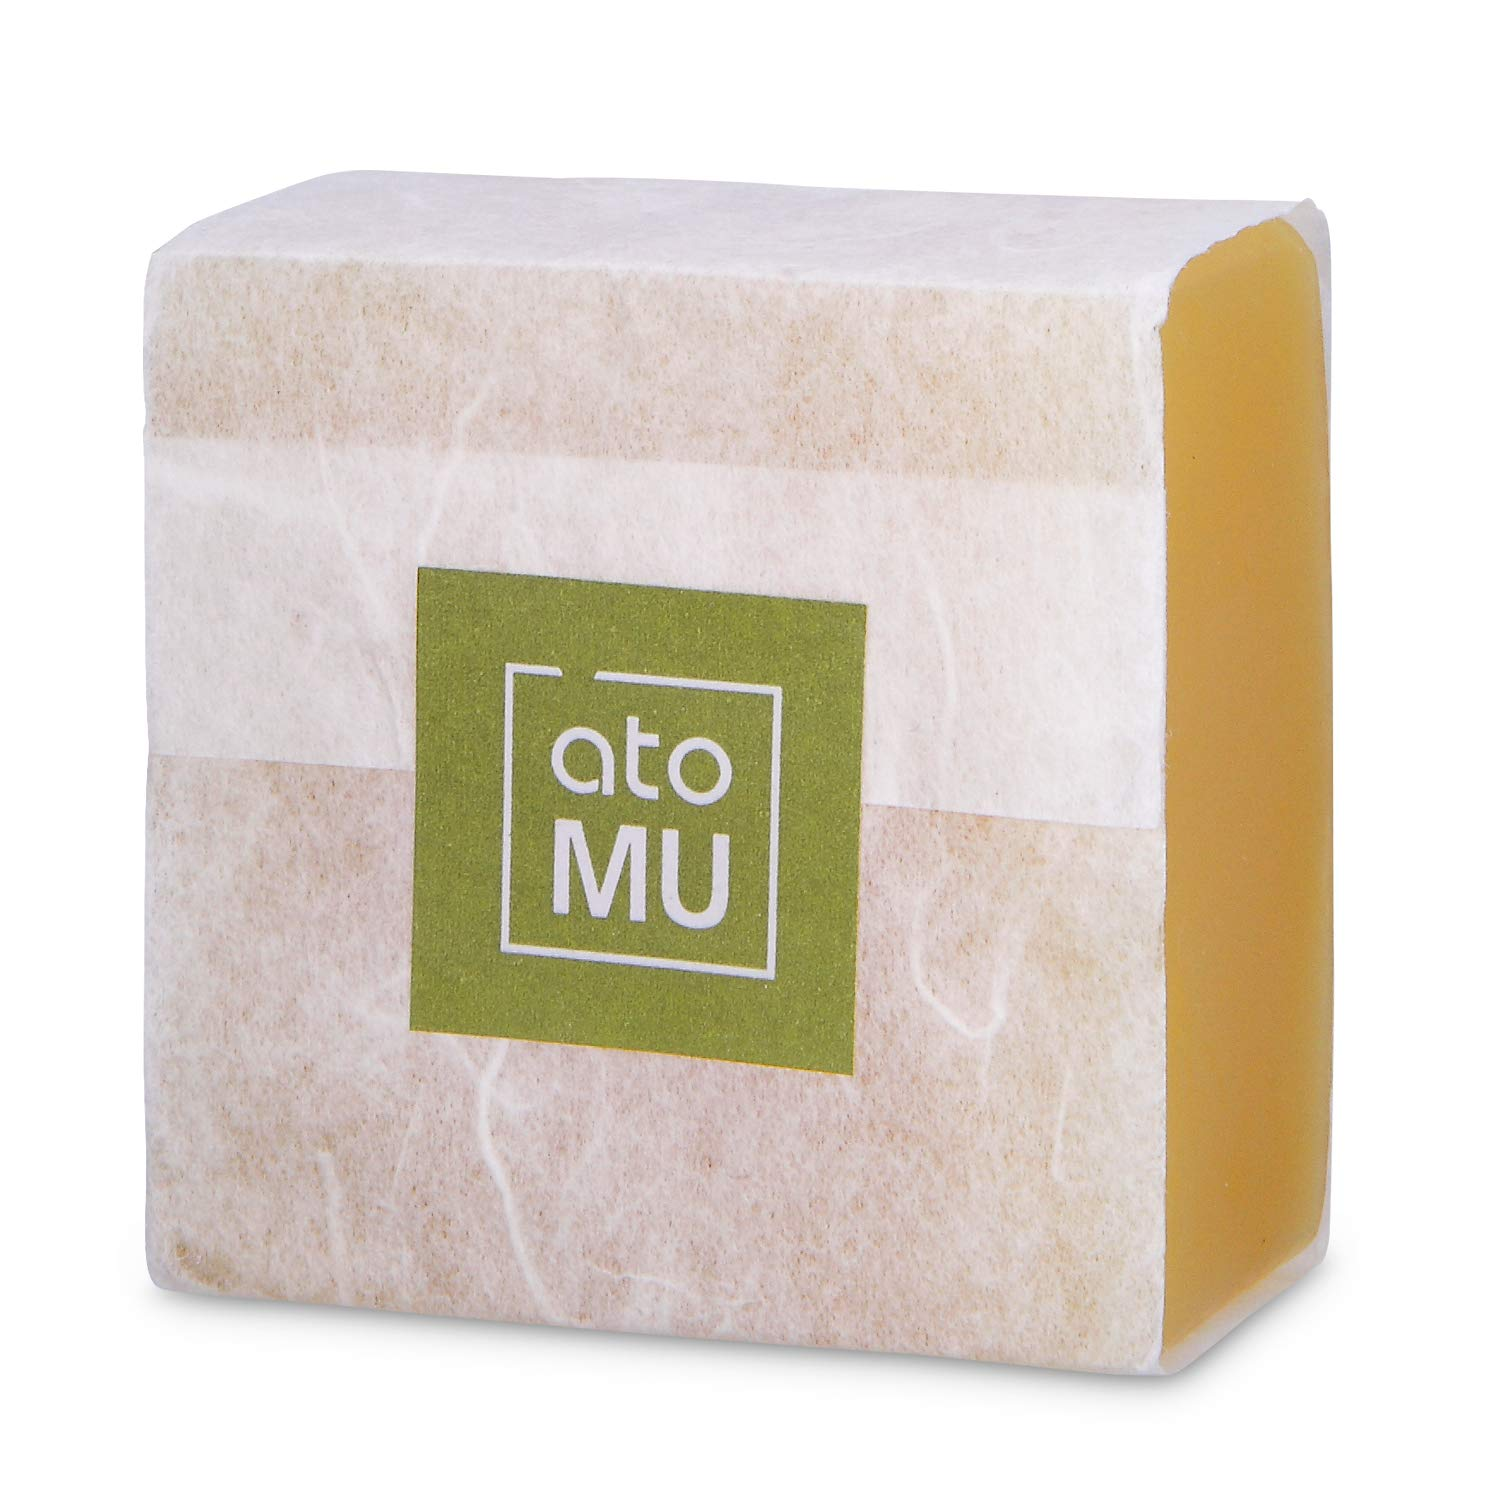 ATOMU Handmade Soap vegan soap with patented ingredients for Sensitive Skin and treating eczema, atopy, psoriasis, acne symptoms.